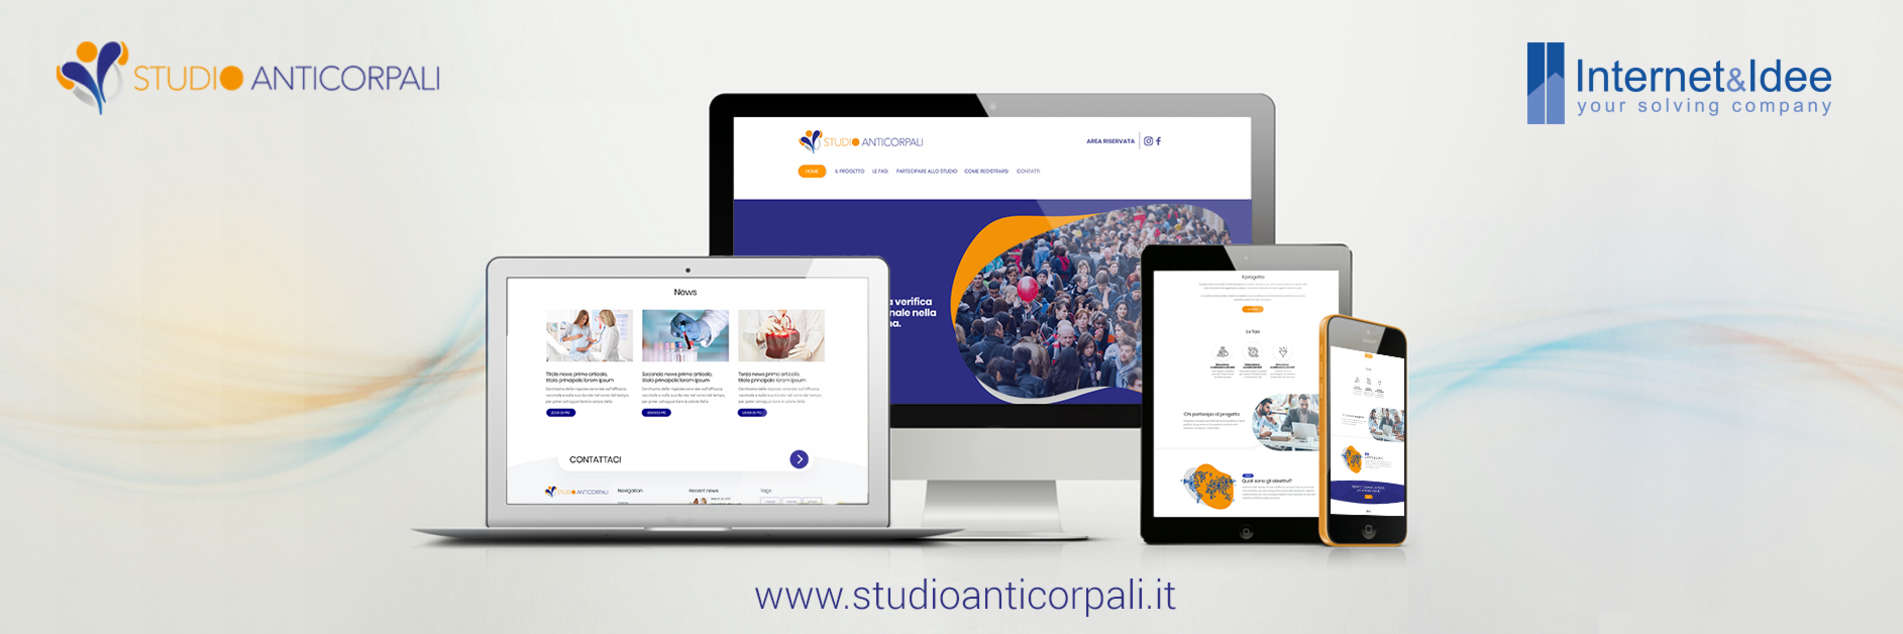 A new website for Studio Anticorpali Project